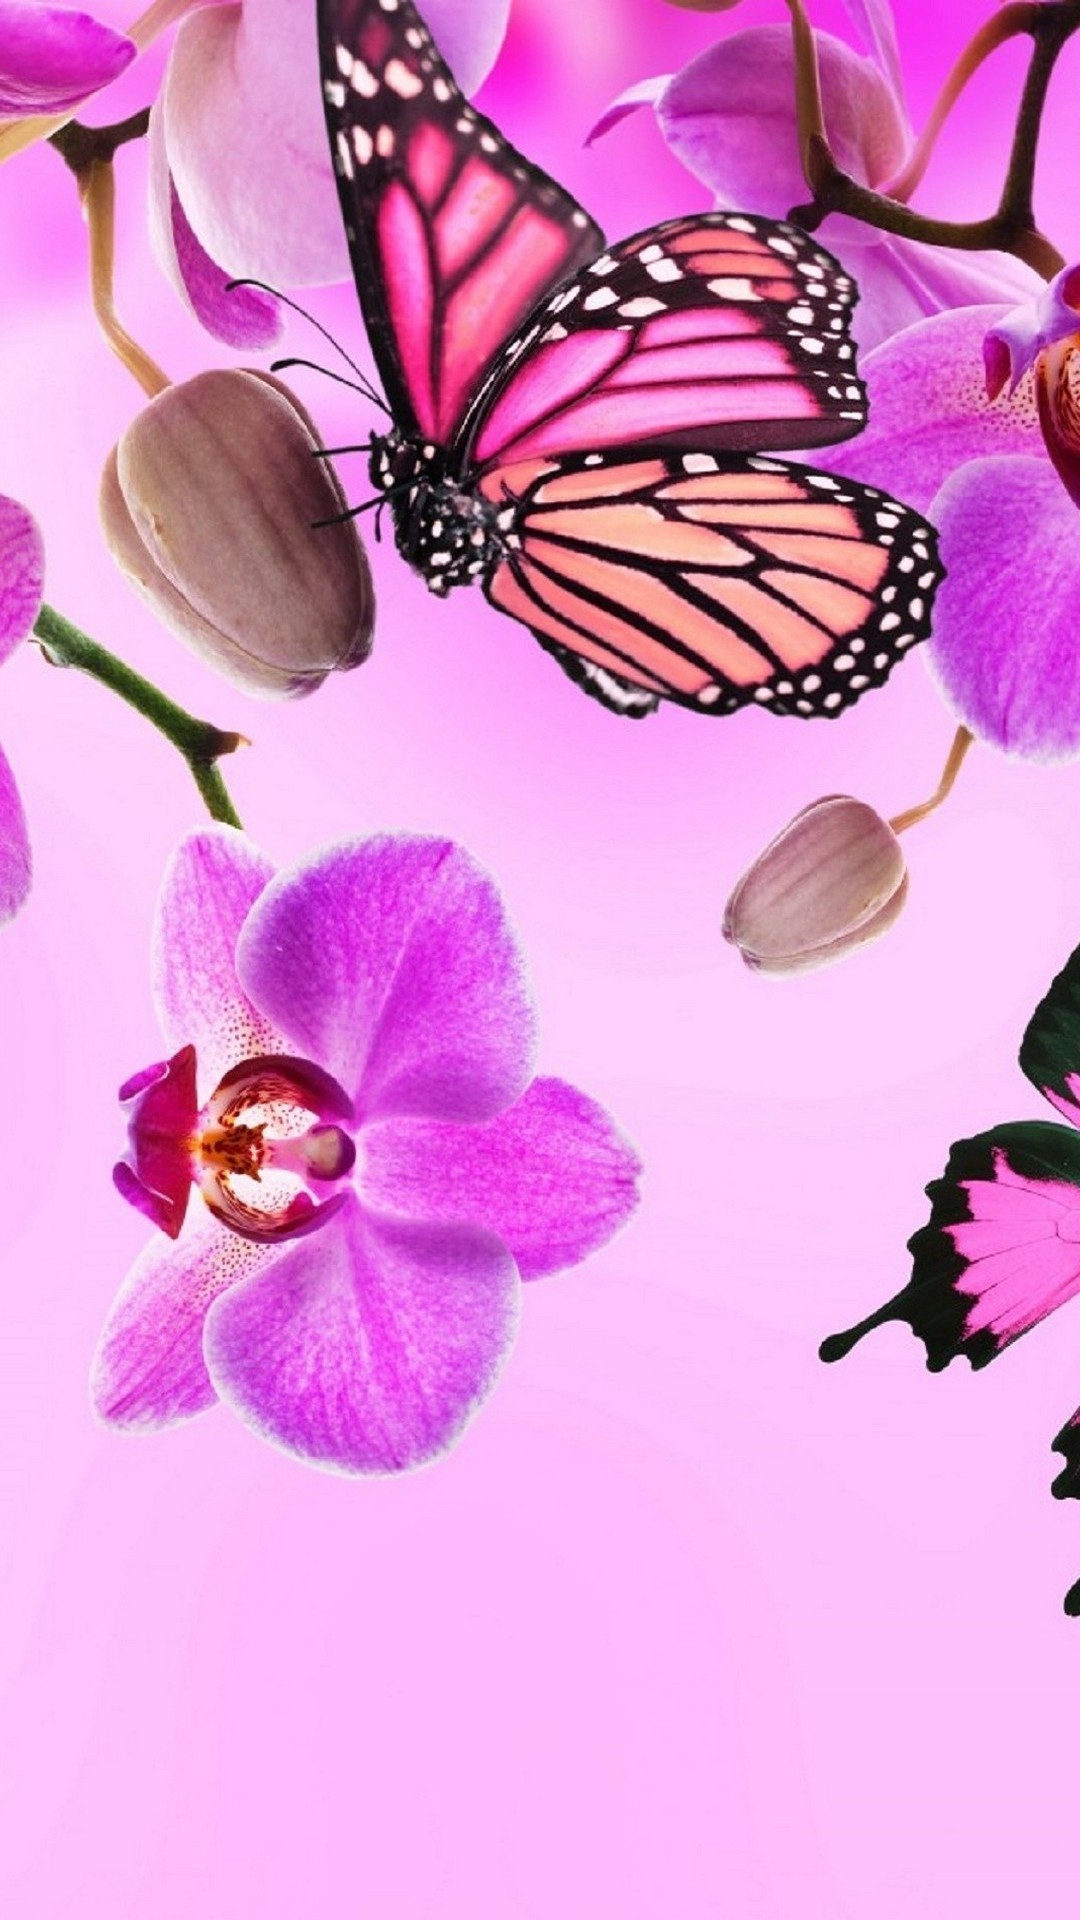 Pink Butterfly Wallpaper Desktop (84+ images)